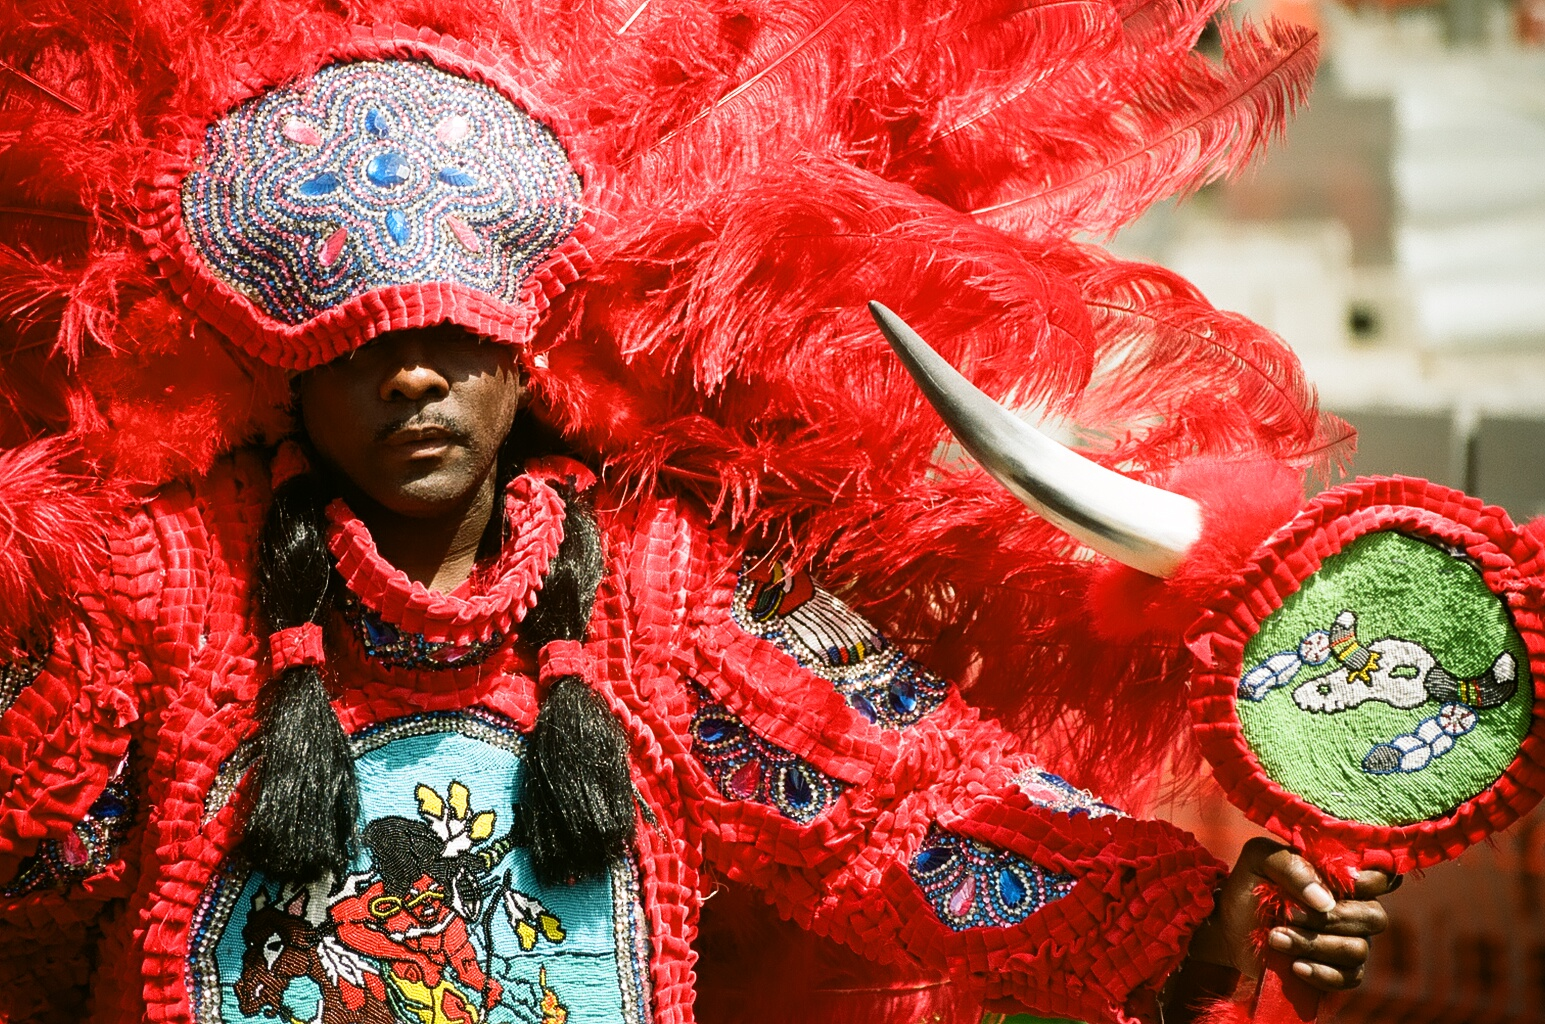 Modern day hobo mardi gras indians a piece of new orleans culture mardi gras indians a piece of new orleans culture m4hsunfo